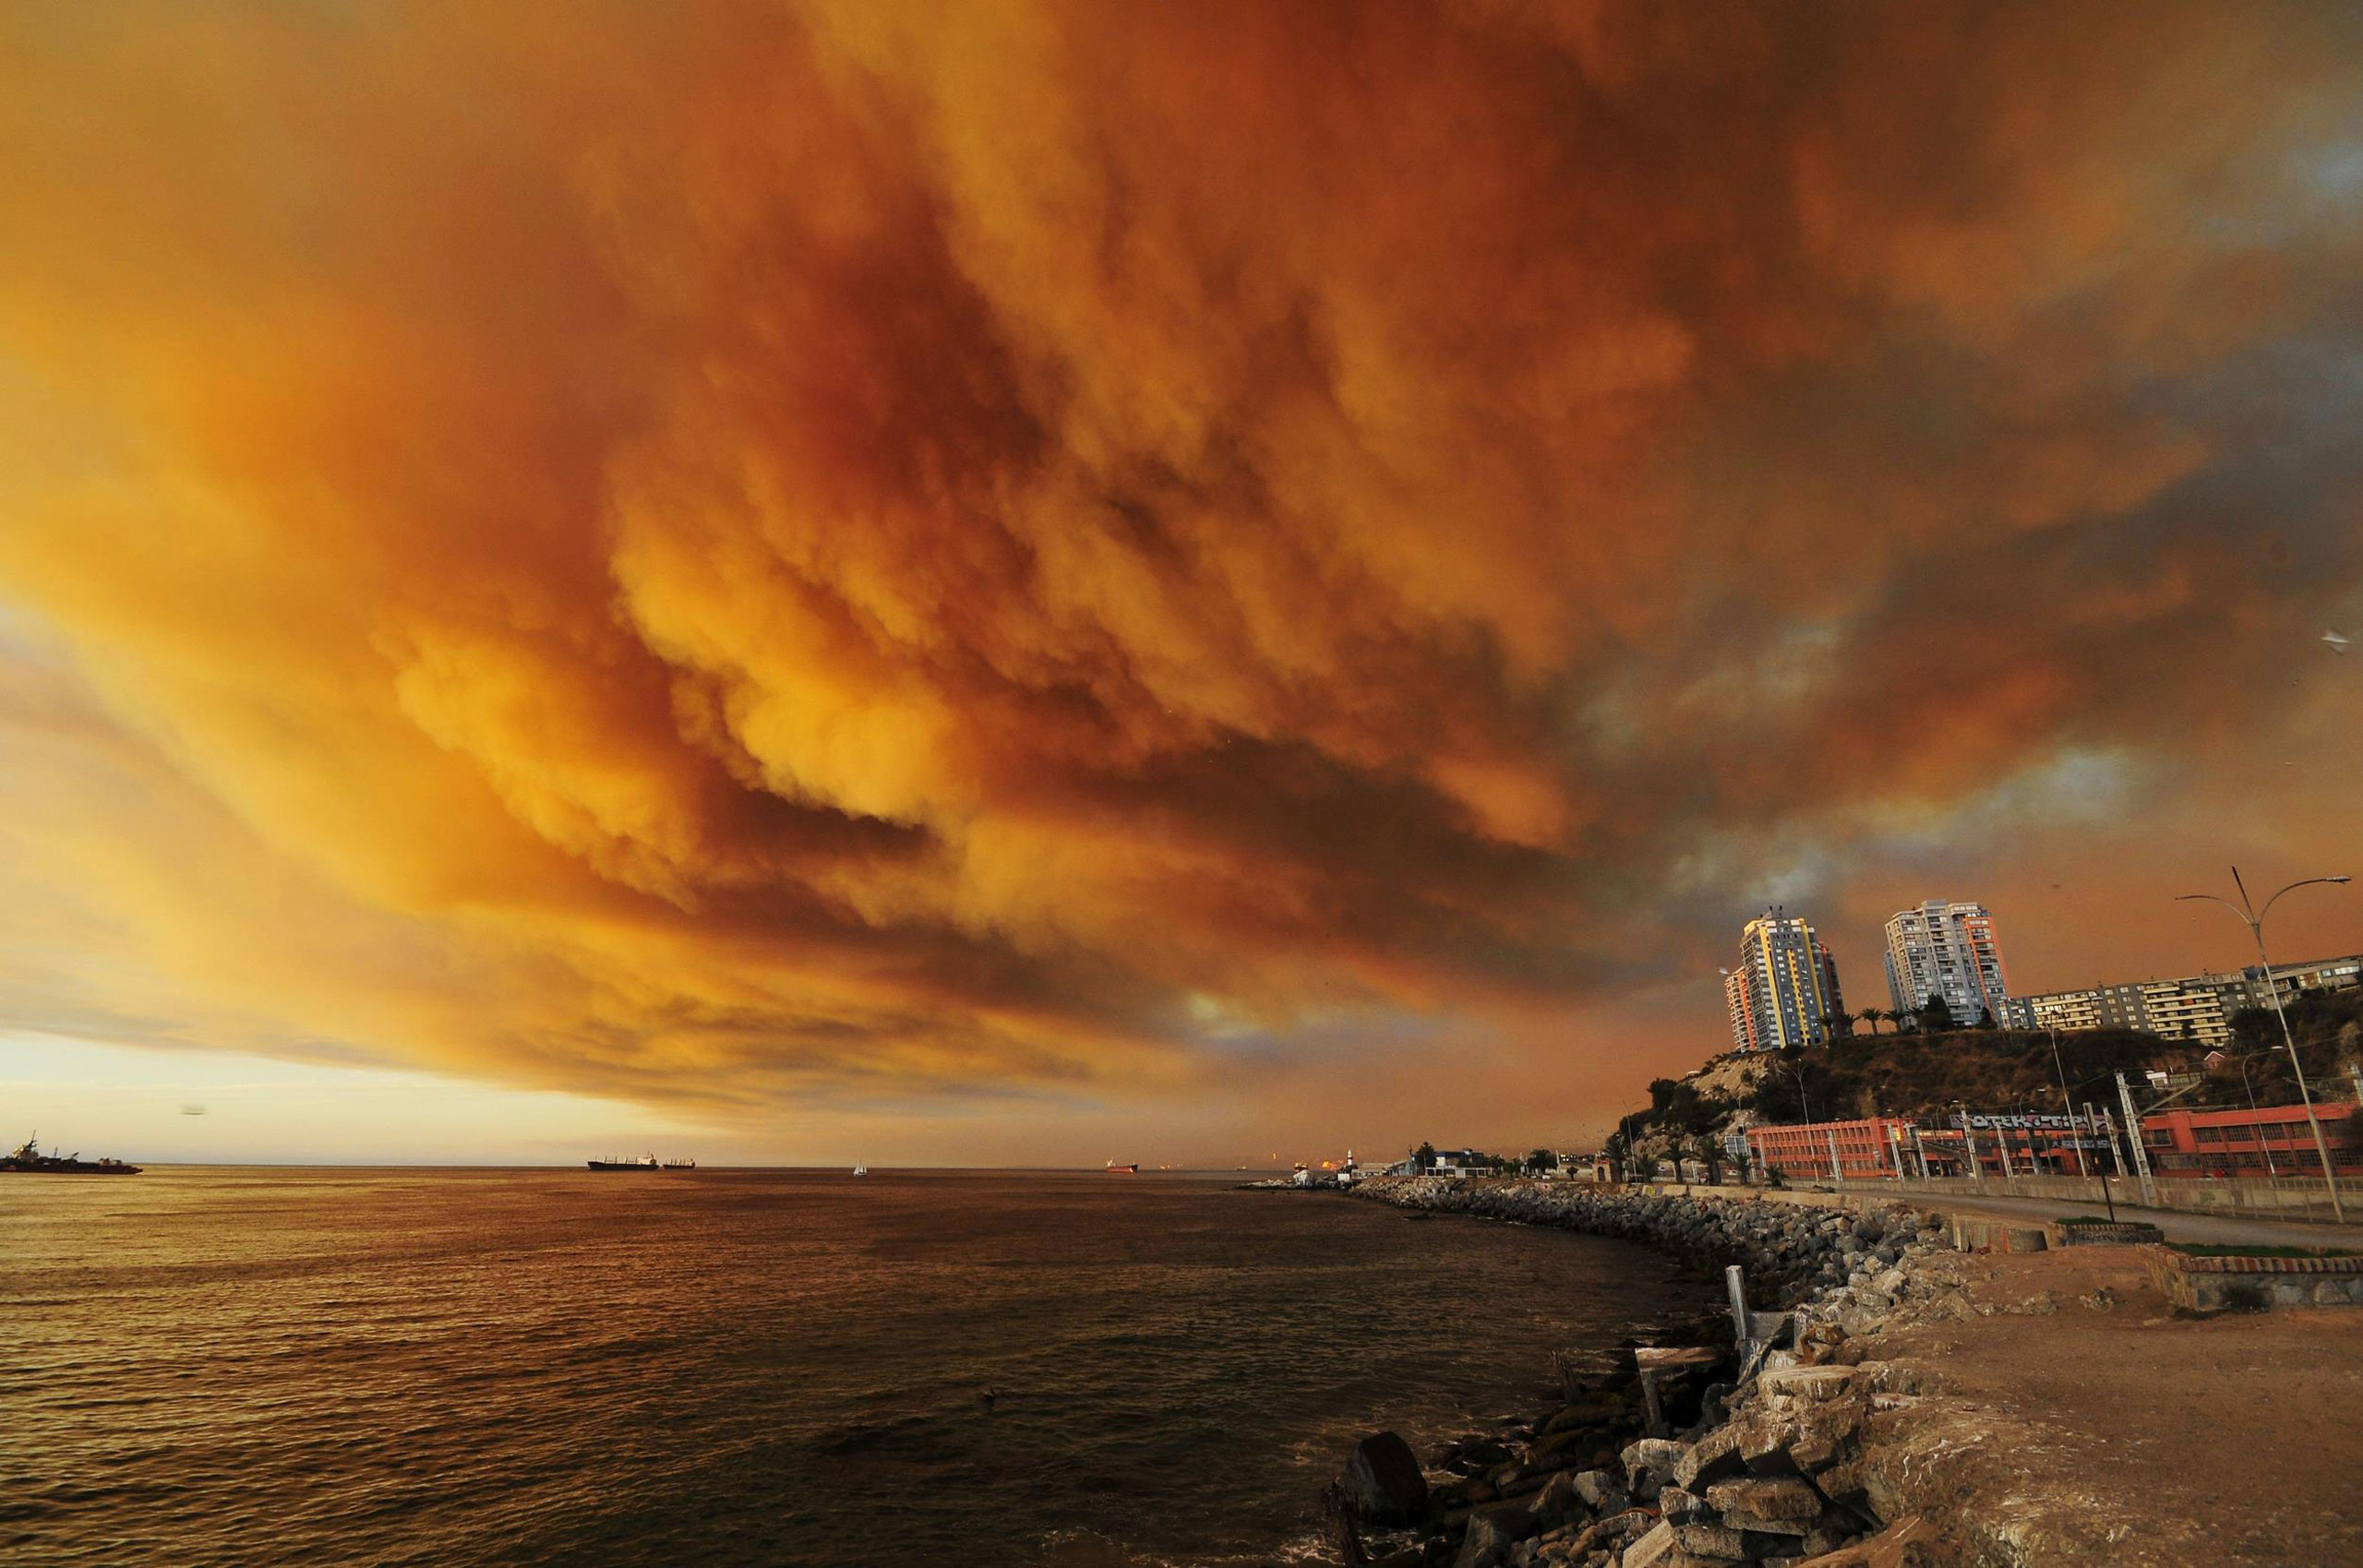 Smoke billows from the forest around Valparaiso in Chile, March 13, 2015.